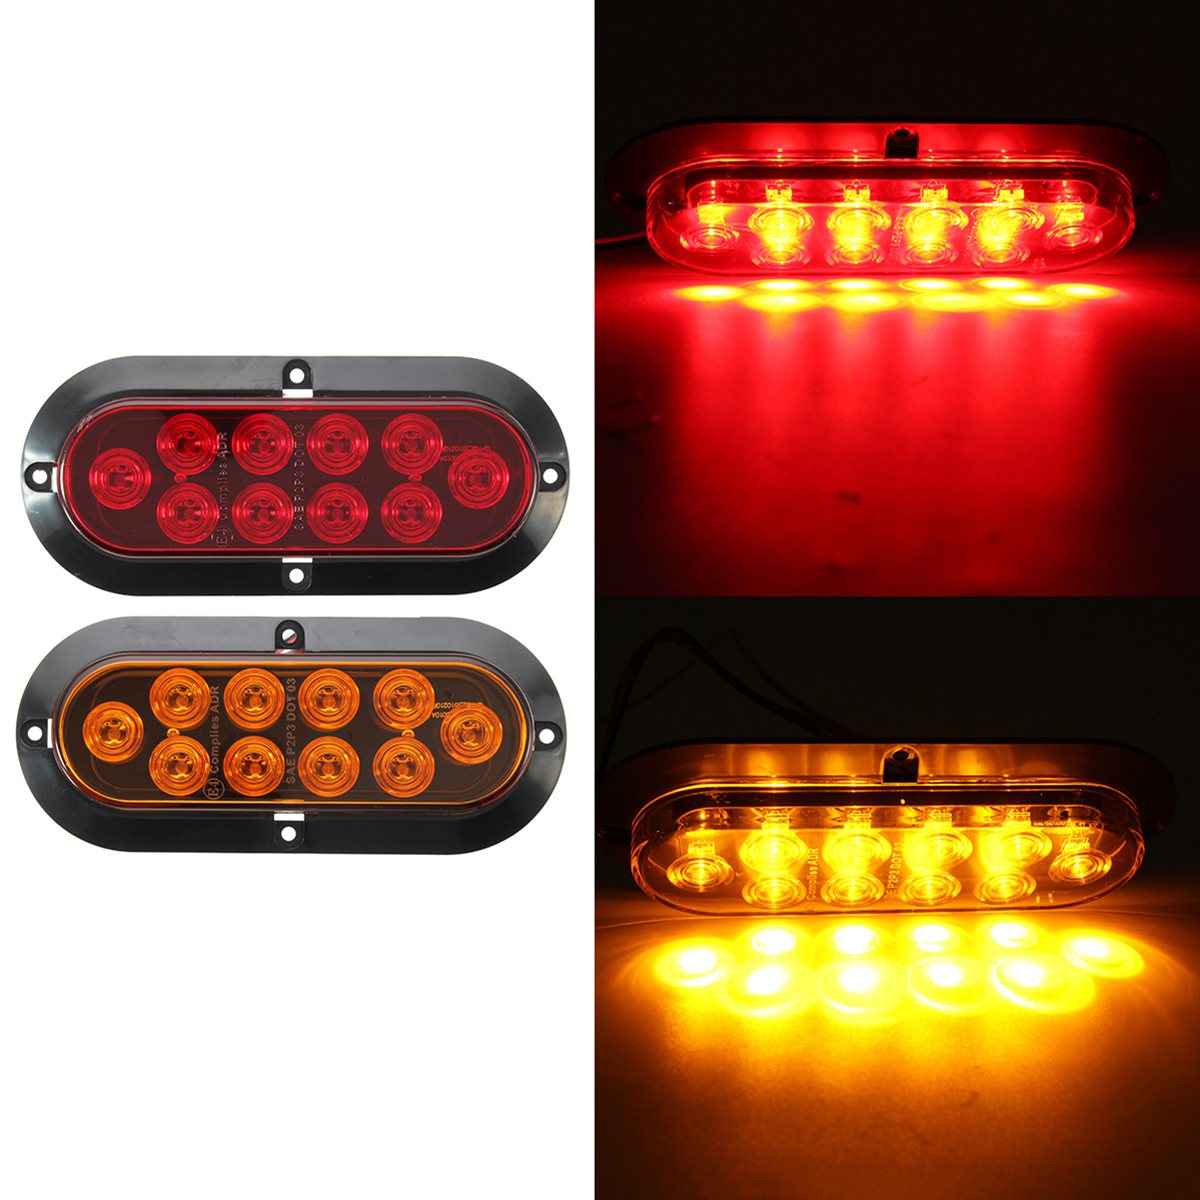 10 LED 6 Truck Trailer Oval Amber Red Surface Mount Turn Signal Stop Tail Light 2pcs 20 led car truck red amber white led trailer waterproof tail lights turn signal brake light stop rear lamp dc 12v cy798 cn